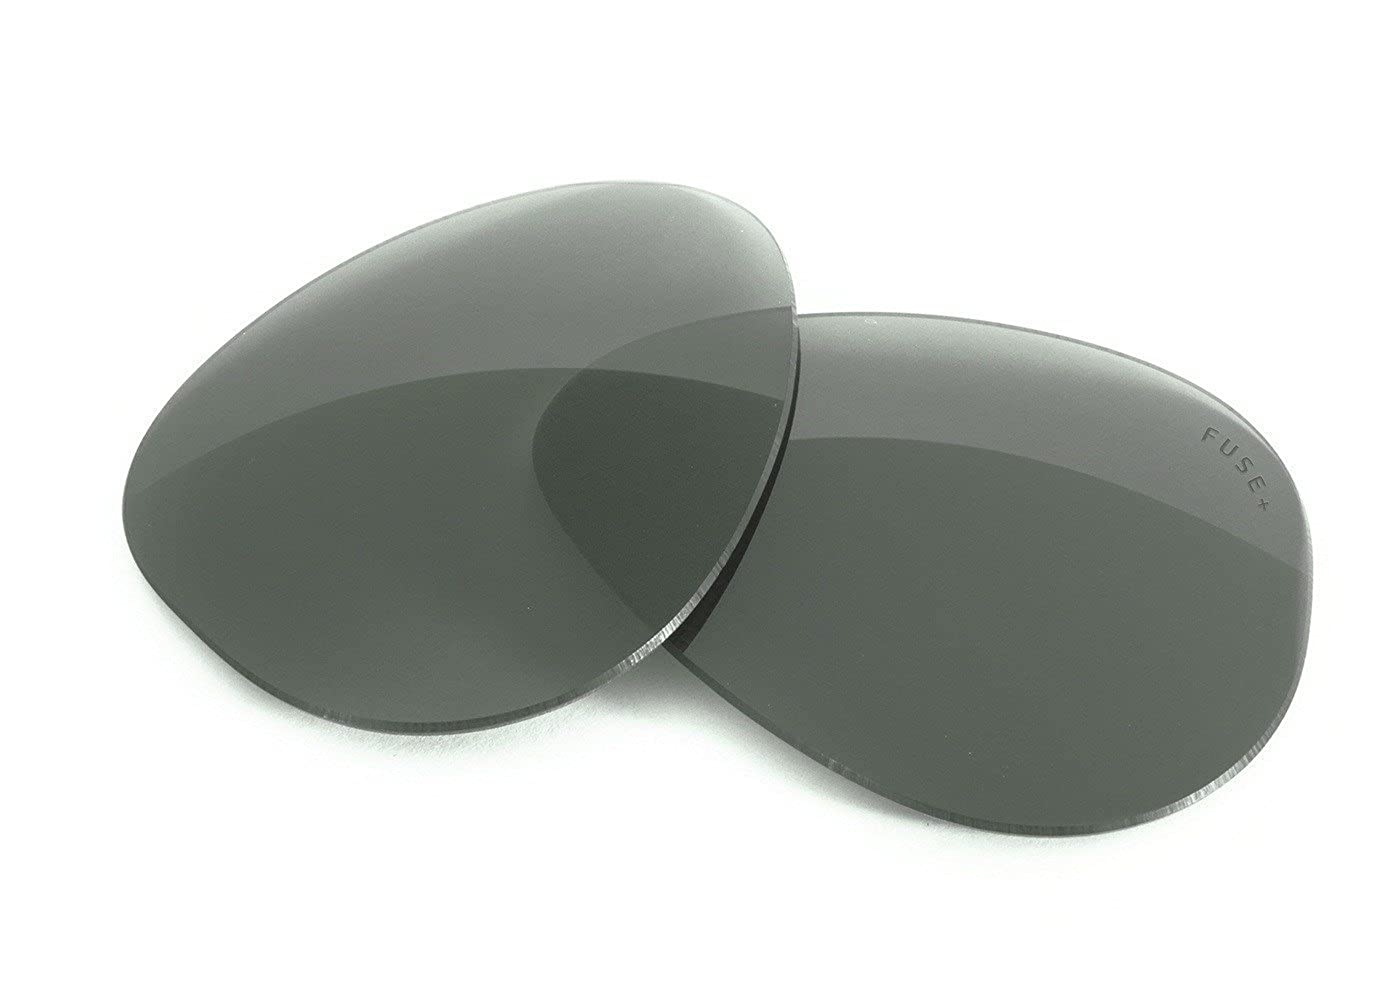 FUSE+ G15 Polarized Replacement Lenses for Ray-Ban RB8301 (59mm) fuse lenses 100522-ZSG15P-000000